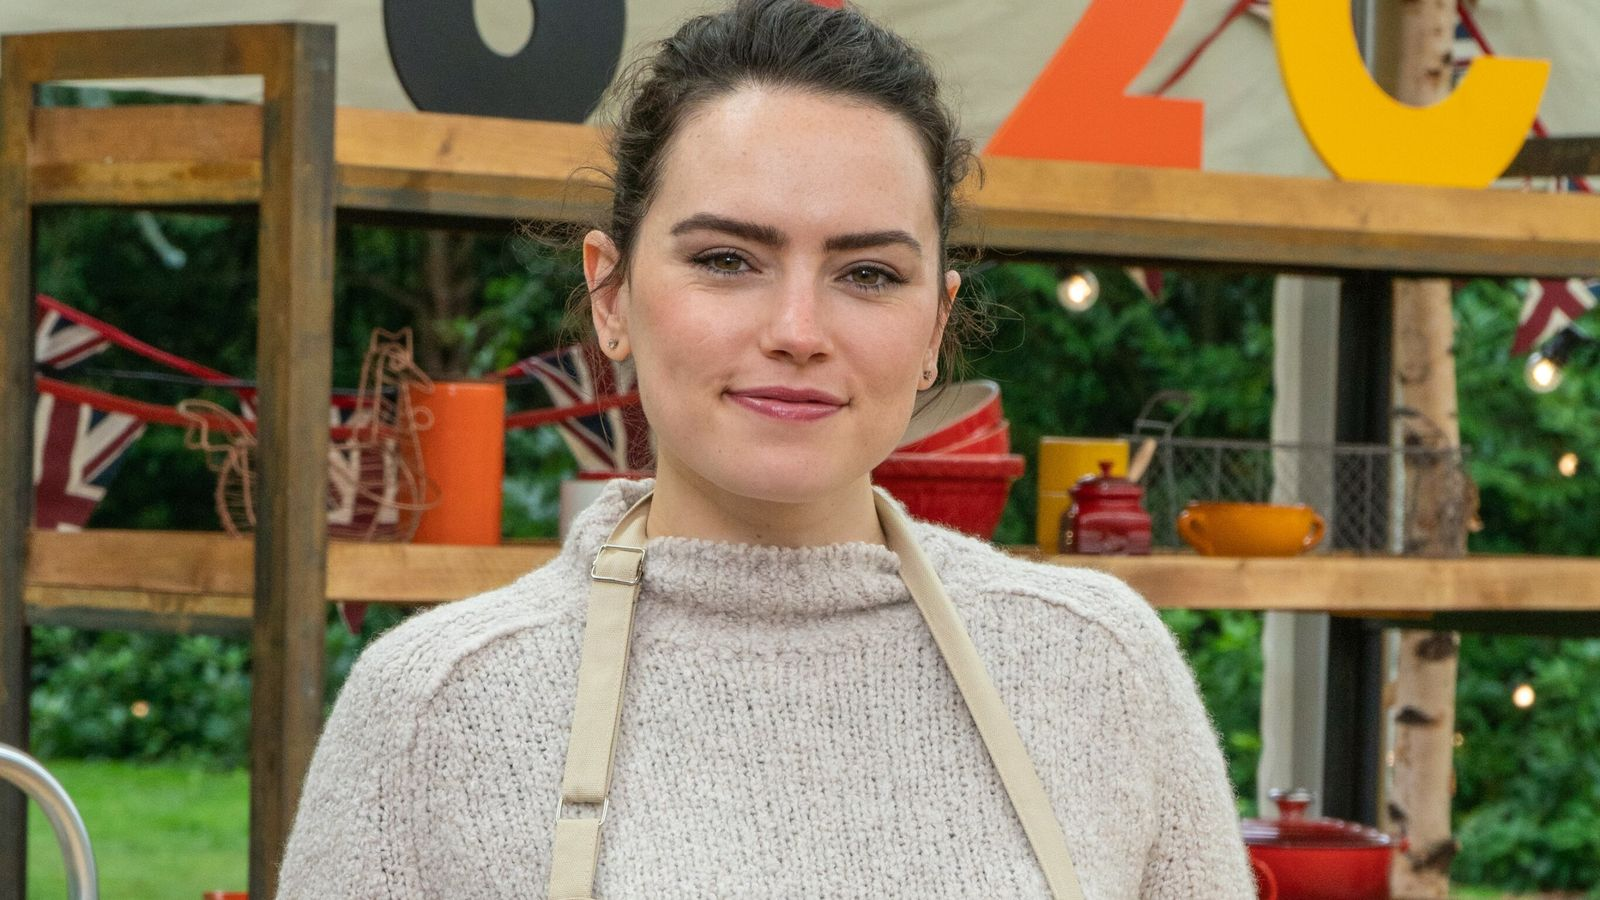 Daisy Ridley Celebrity Bake Off lineup 2021